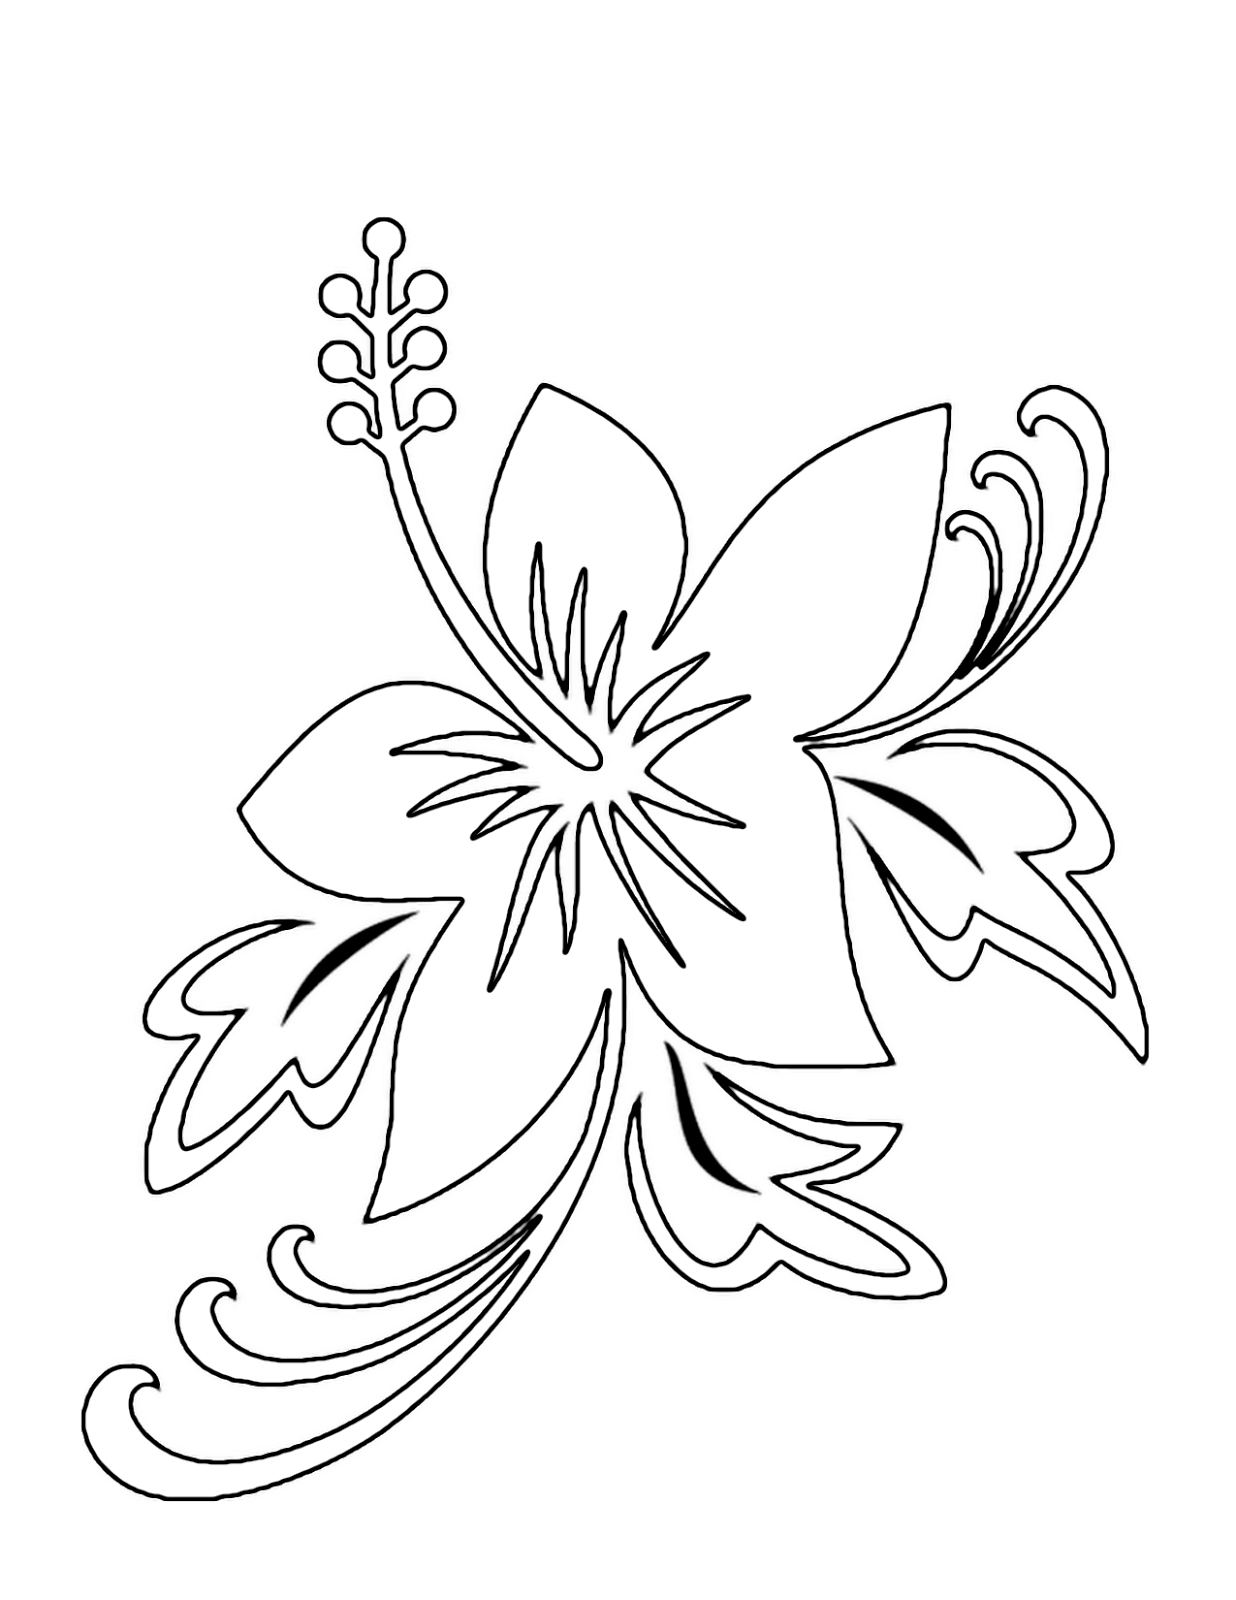 printable flowers coloring pages coloring pages flower free printable coloring pages flowers printable pages coloring